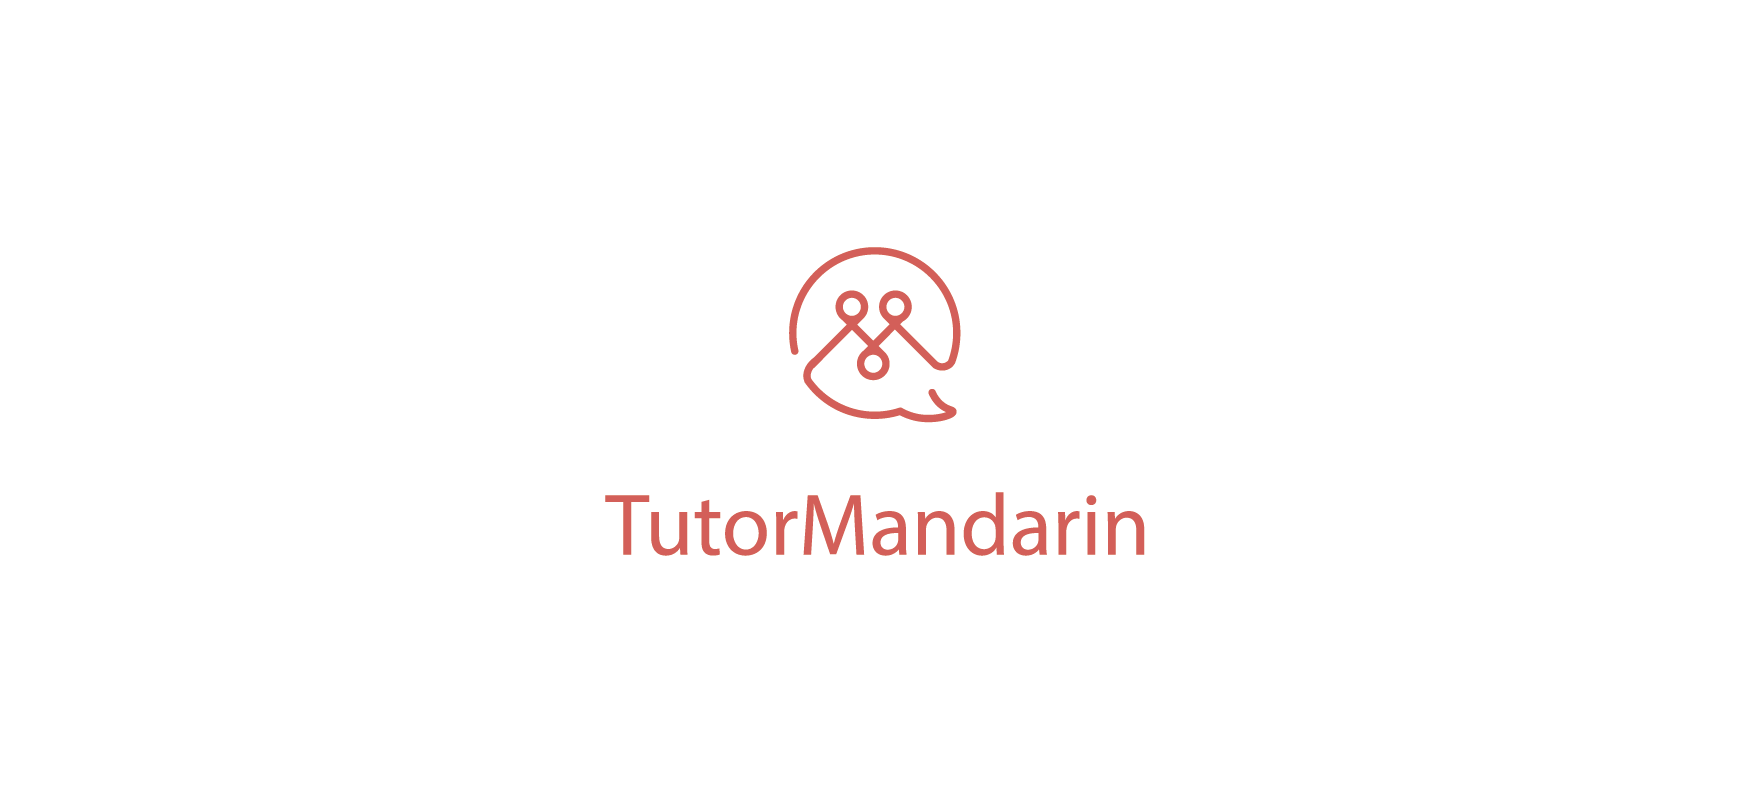 TutorMandarin Press Kit - Standing logo in red